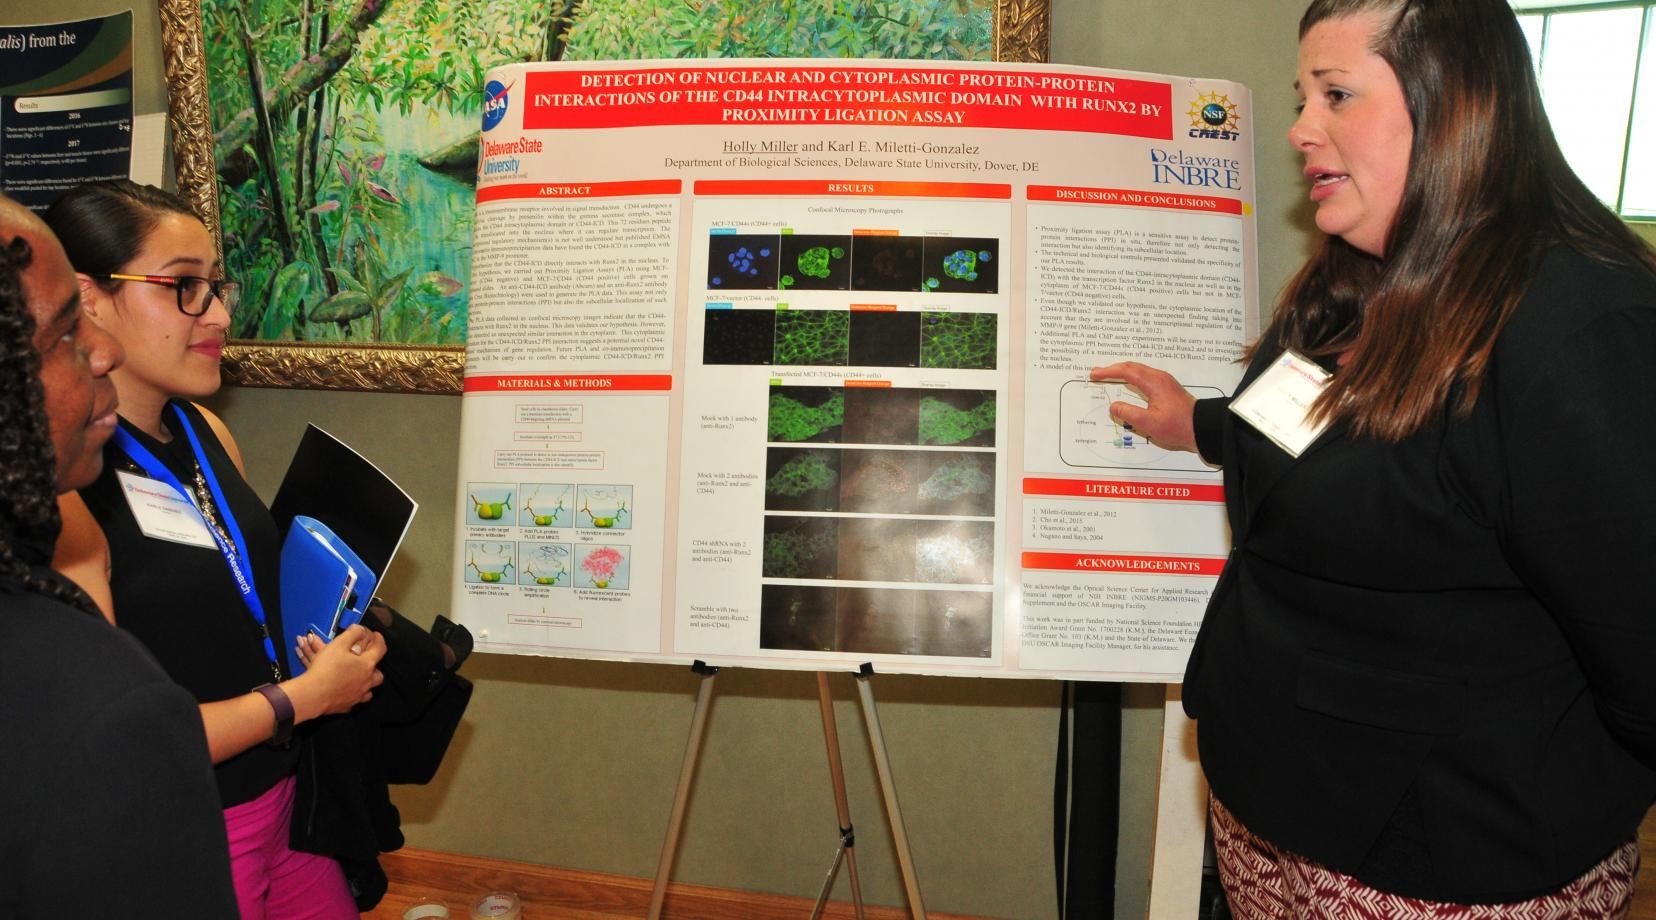 Holly Miller, a biological science graduate students, explains her research poster on the detection of nuclear and cytoplasmic protein and the protein interaction of the CD44 intracytoplasmic domain with RUNX2 by proximity ligation assay.